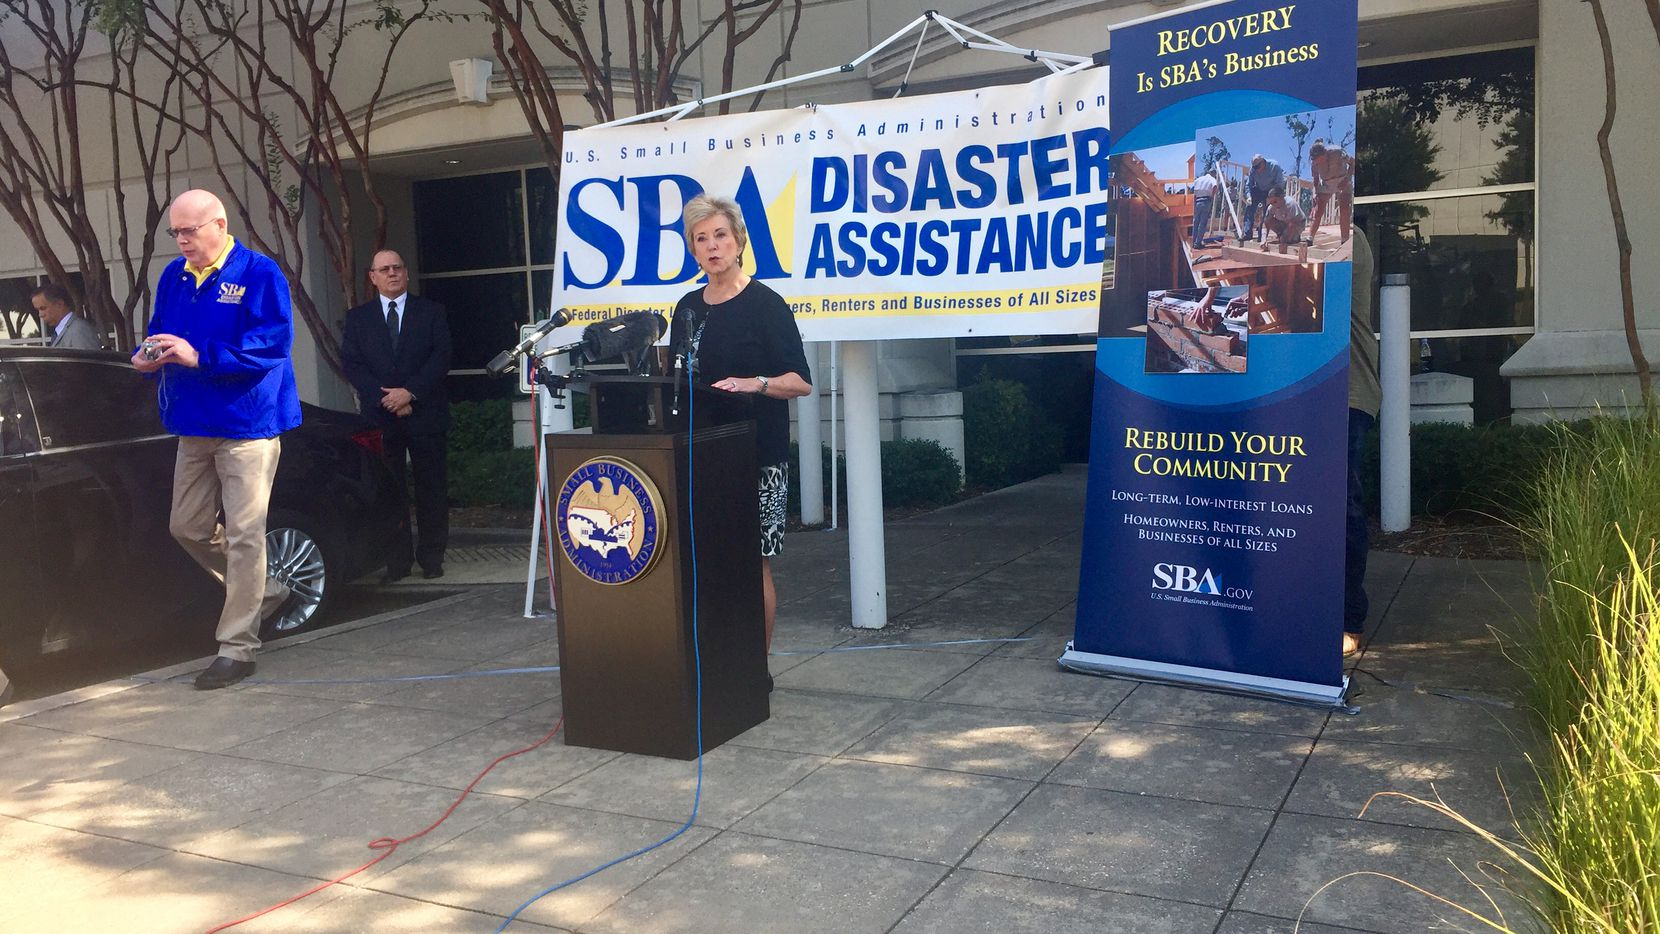 Linda McMahon, administrator of the Small Business Administration, speaks in Fort Worth.